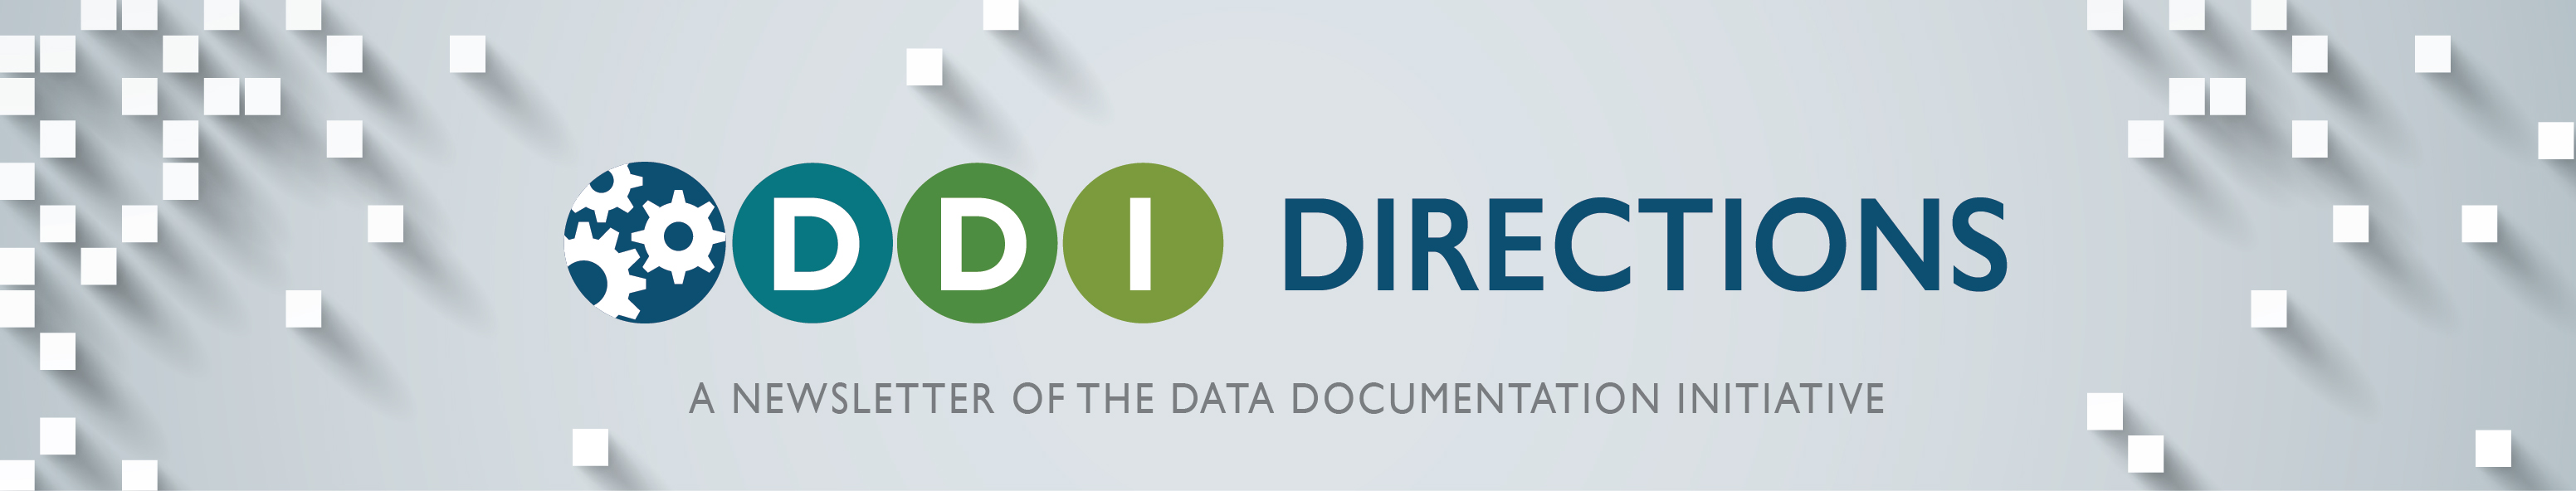 DDI DIRECTIONS: Logo of the DDI Alliance's Newsletter